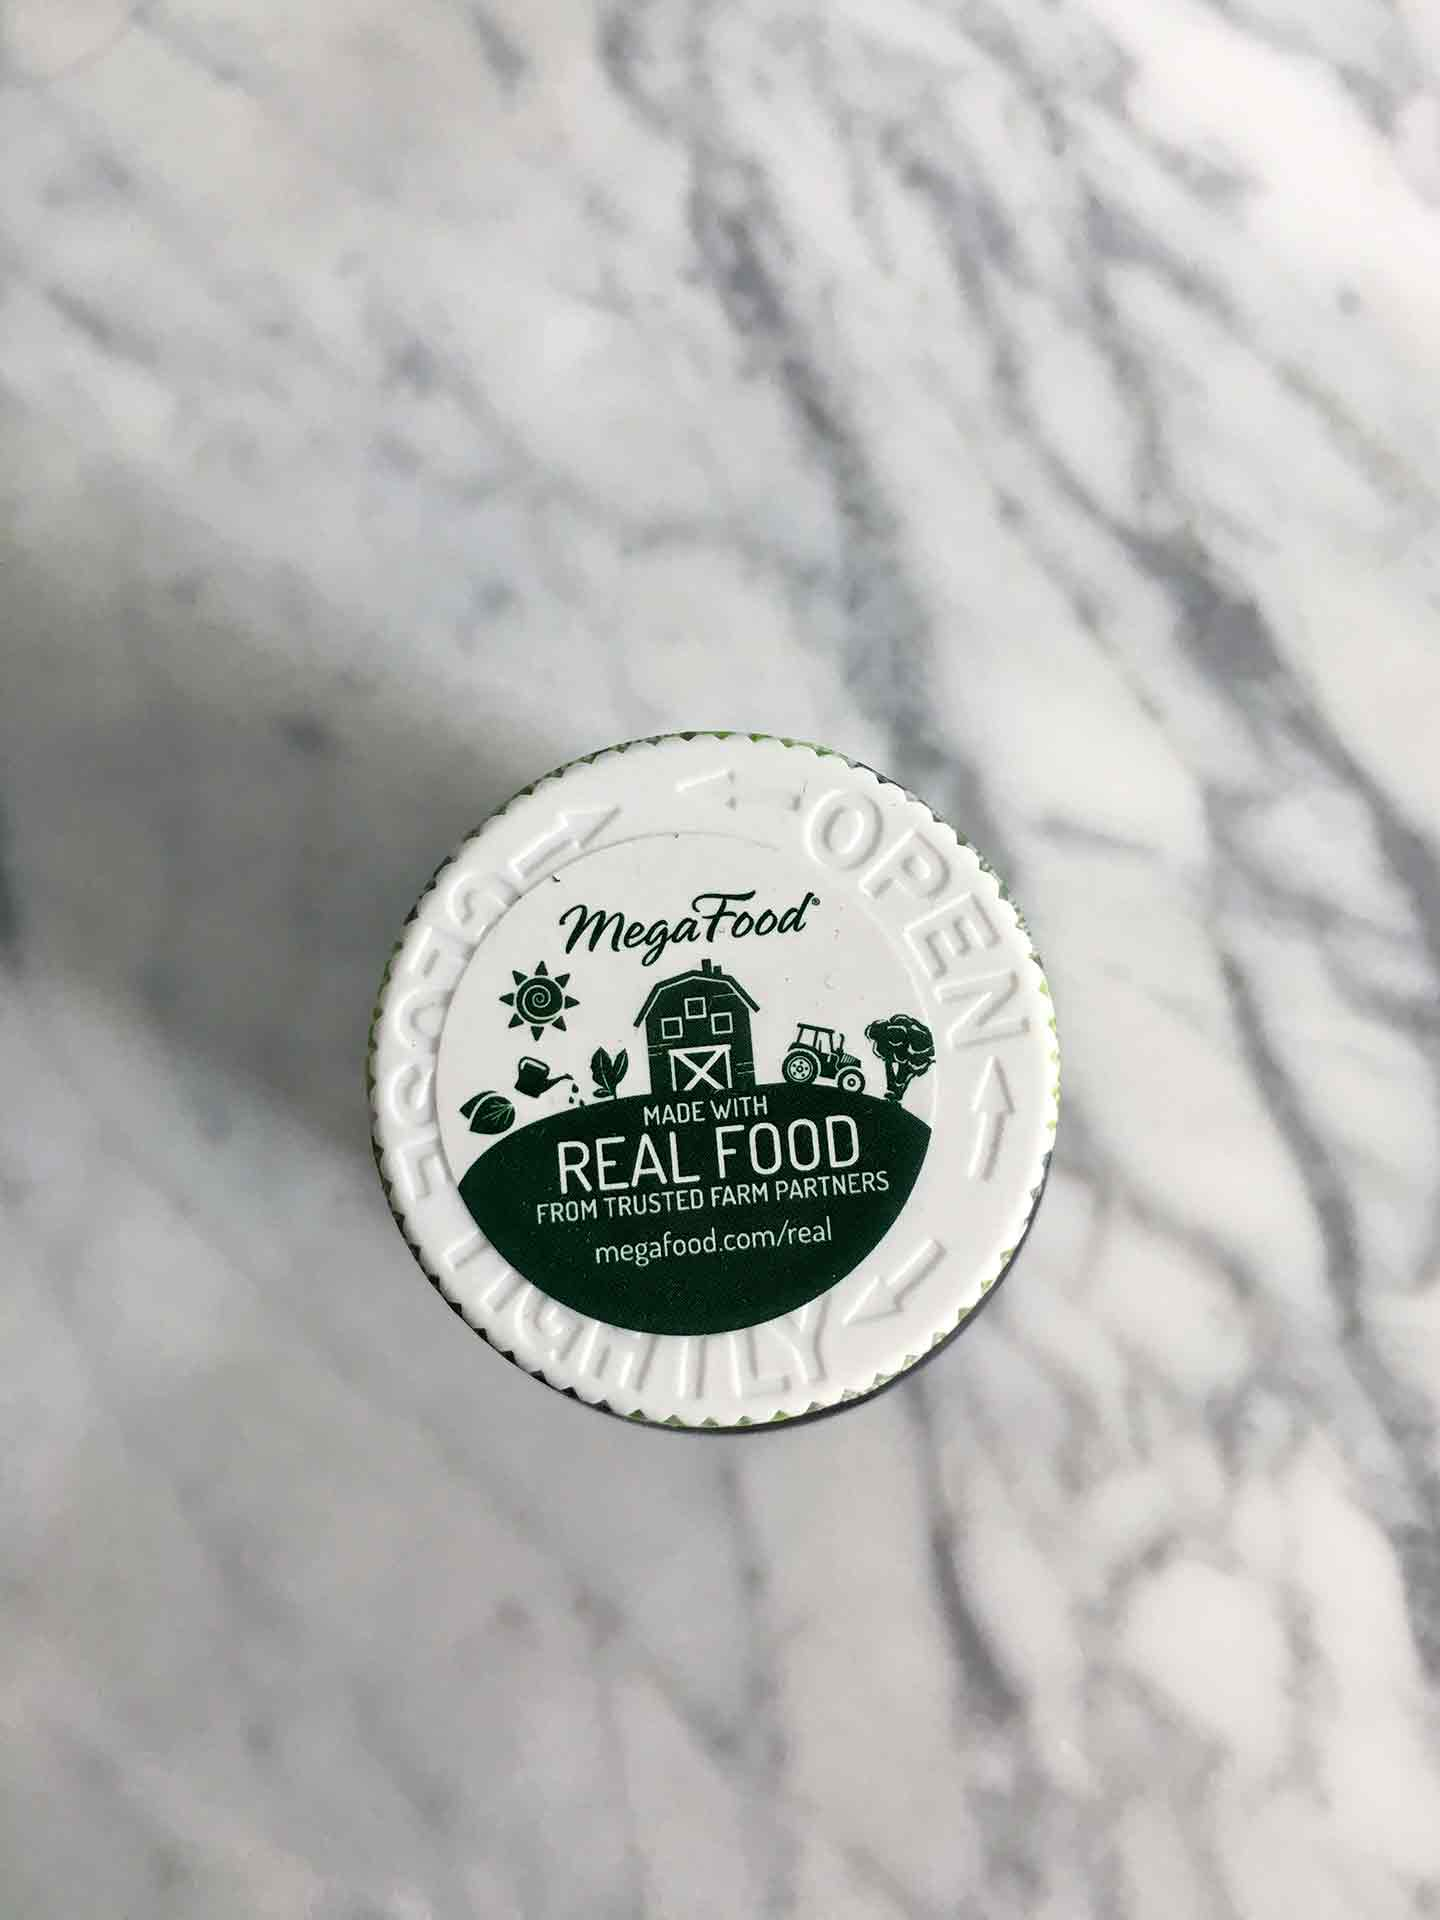 A jar of MegaFood sits on a marble background, touting Real Food ingredients